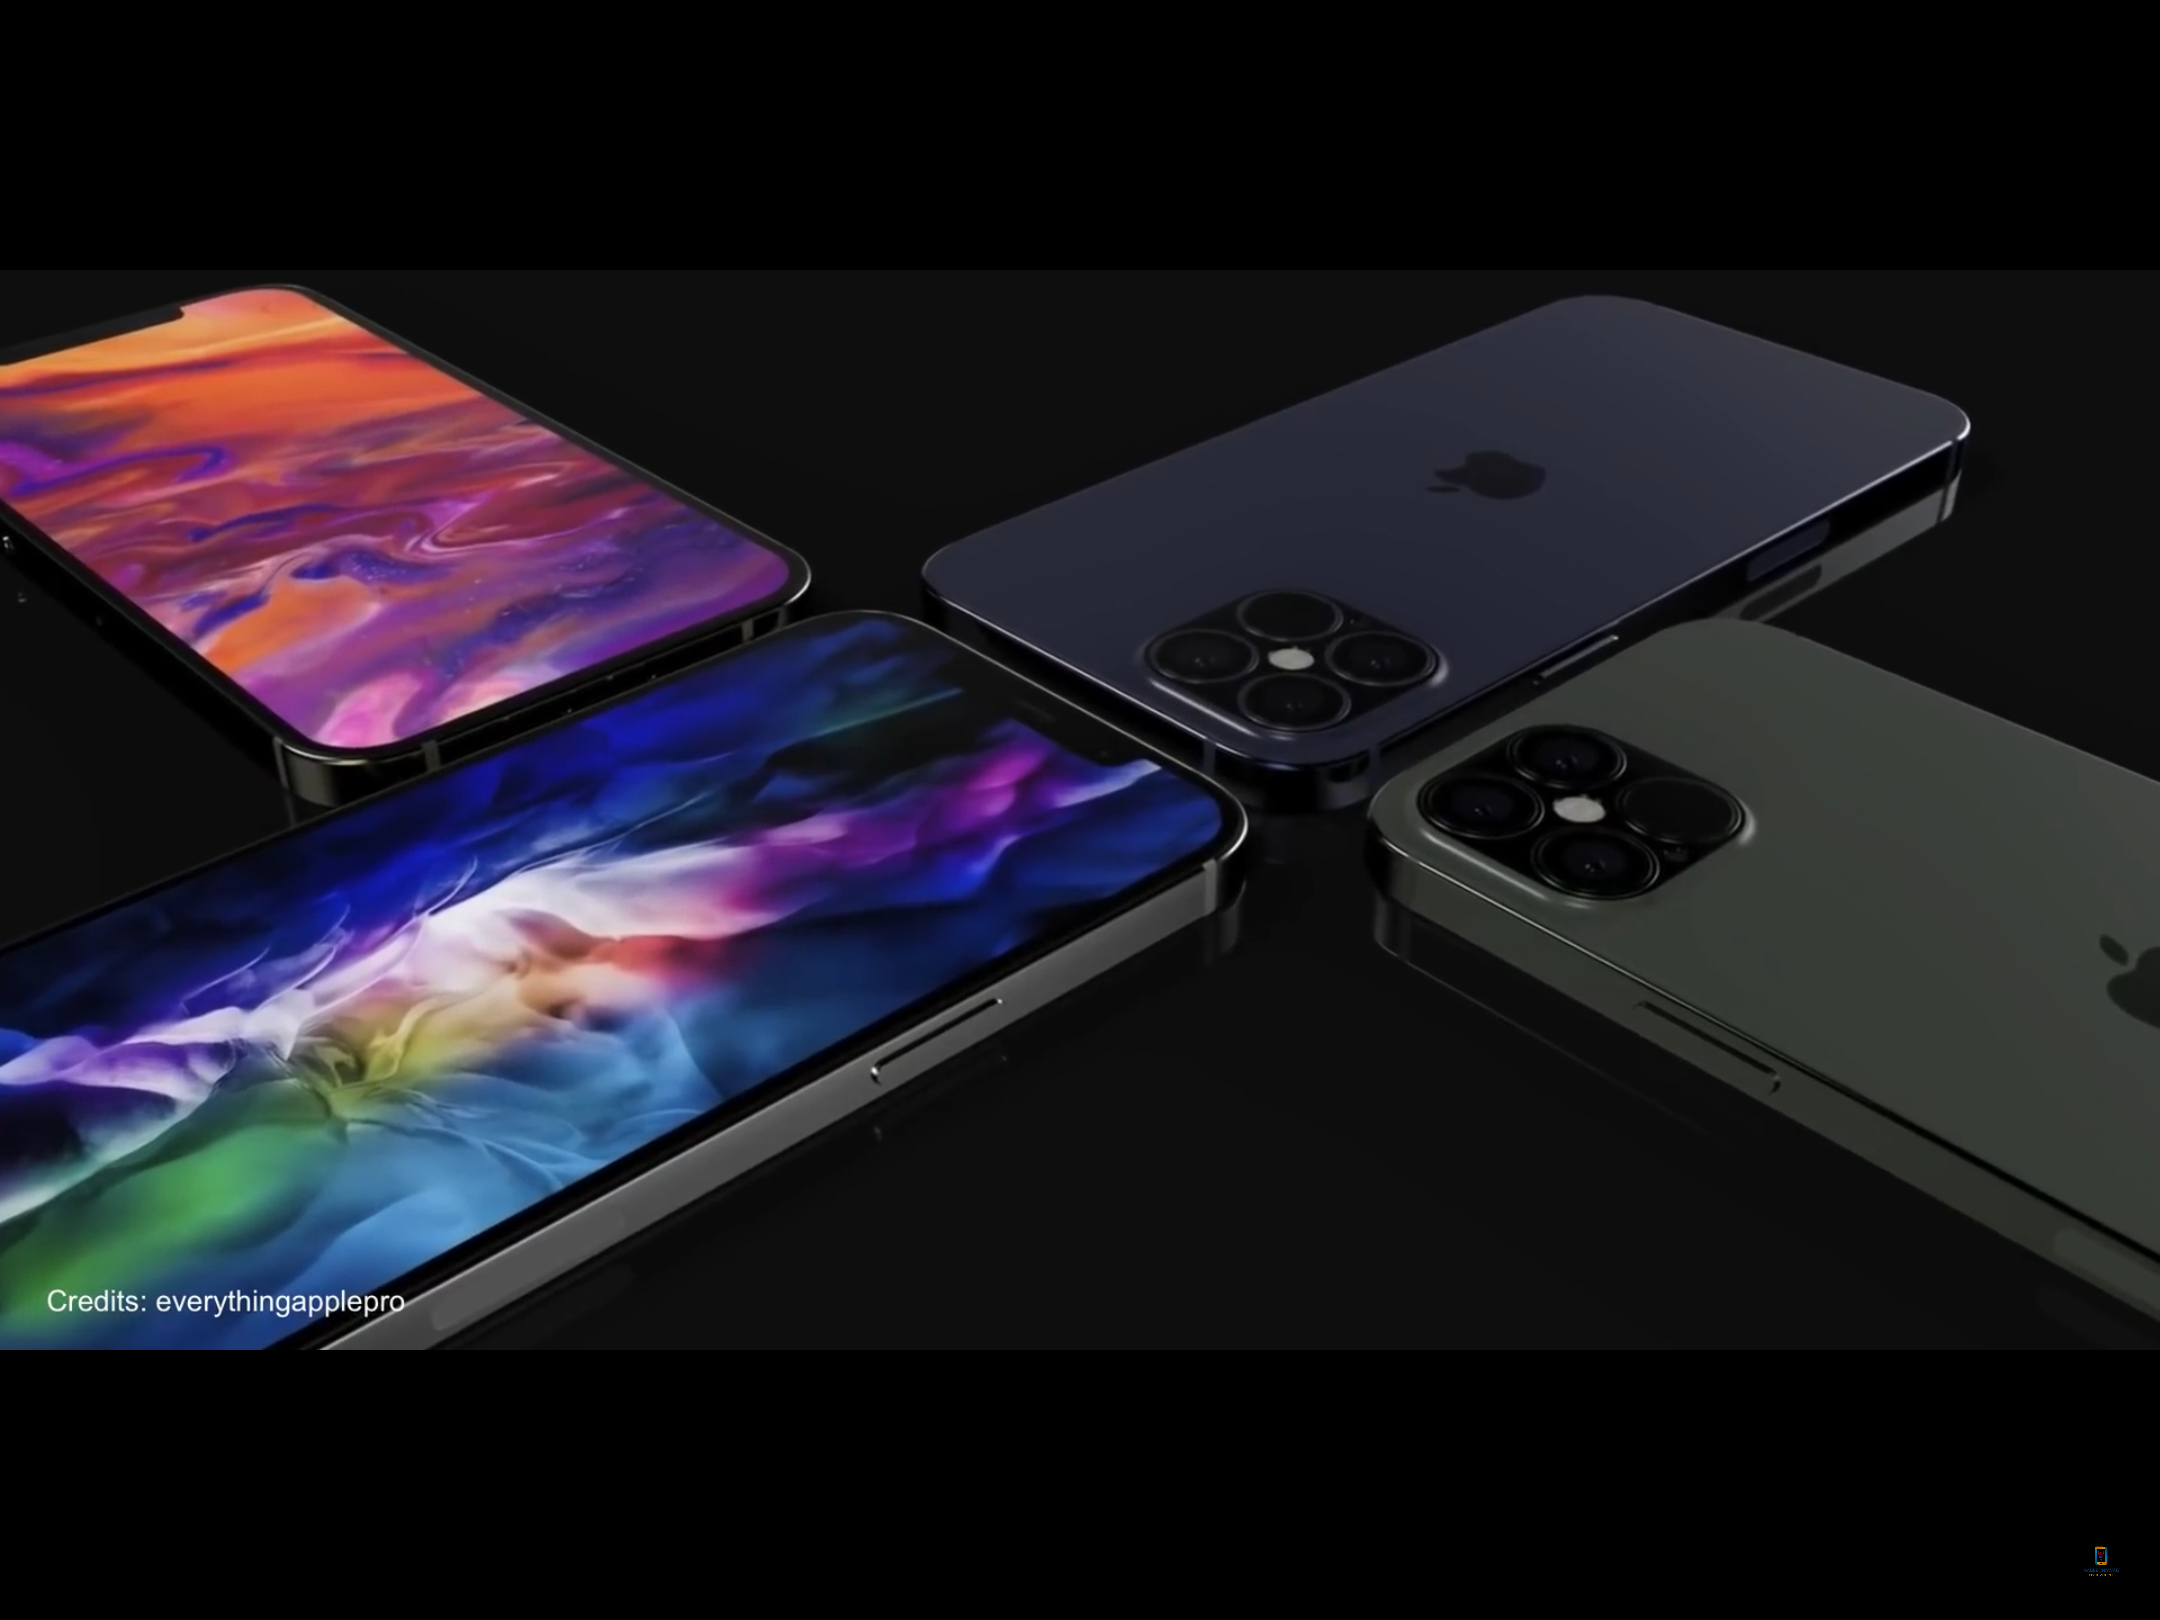 Iphone 12 Leaks In 2020 Iphone Smartphone Deals Apple Iphone